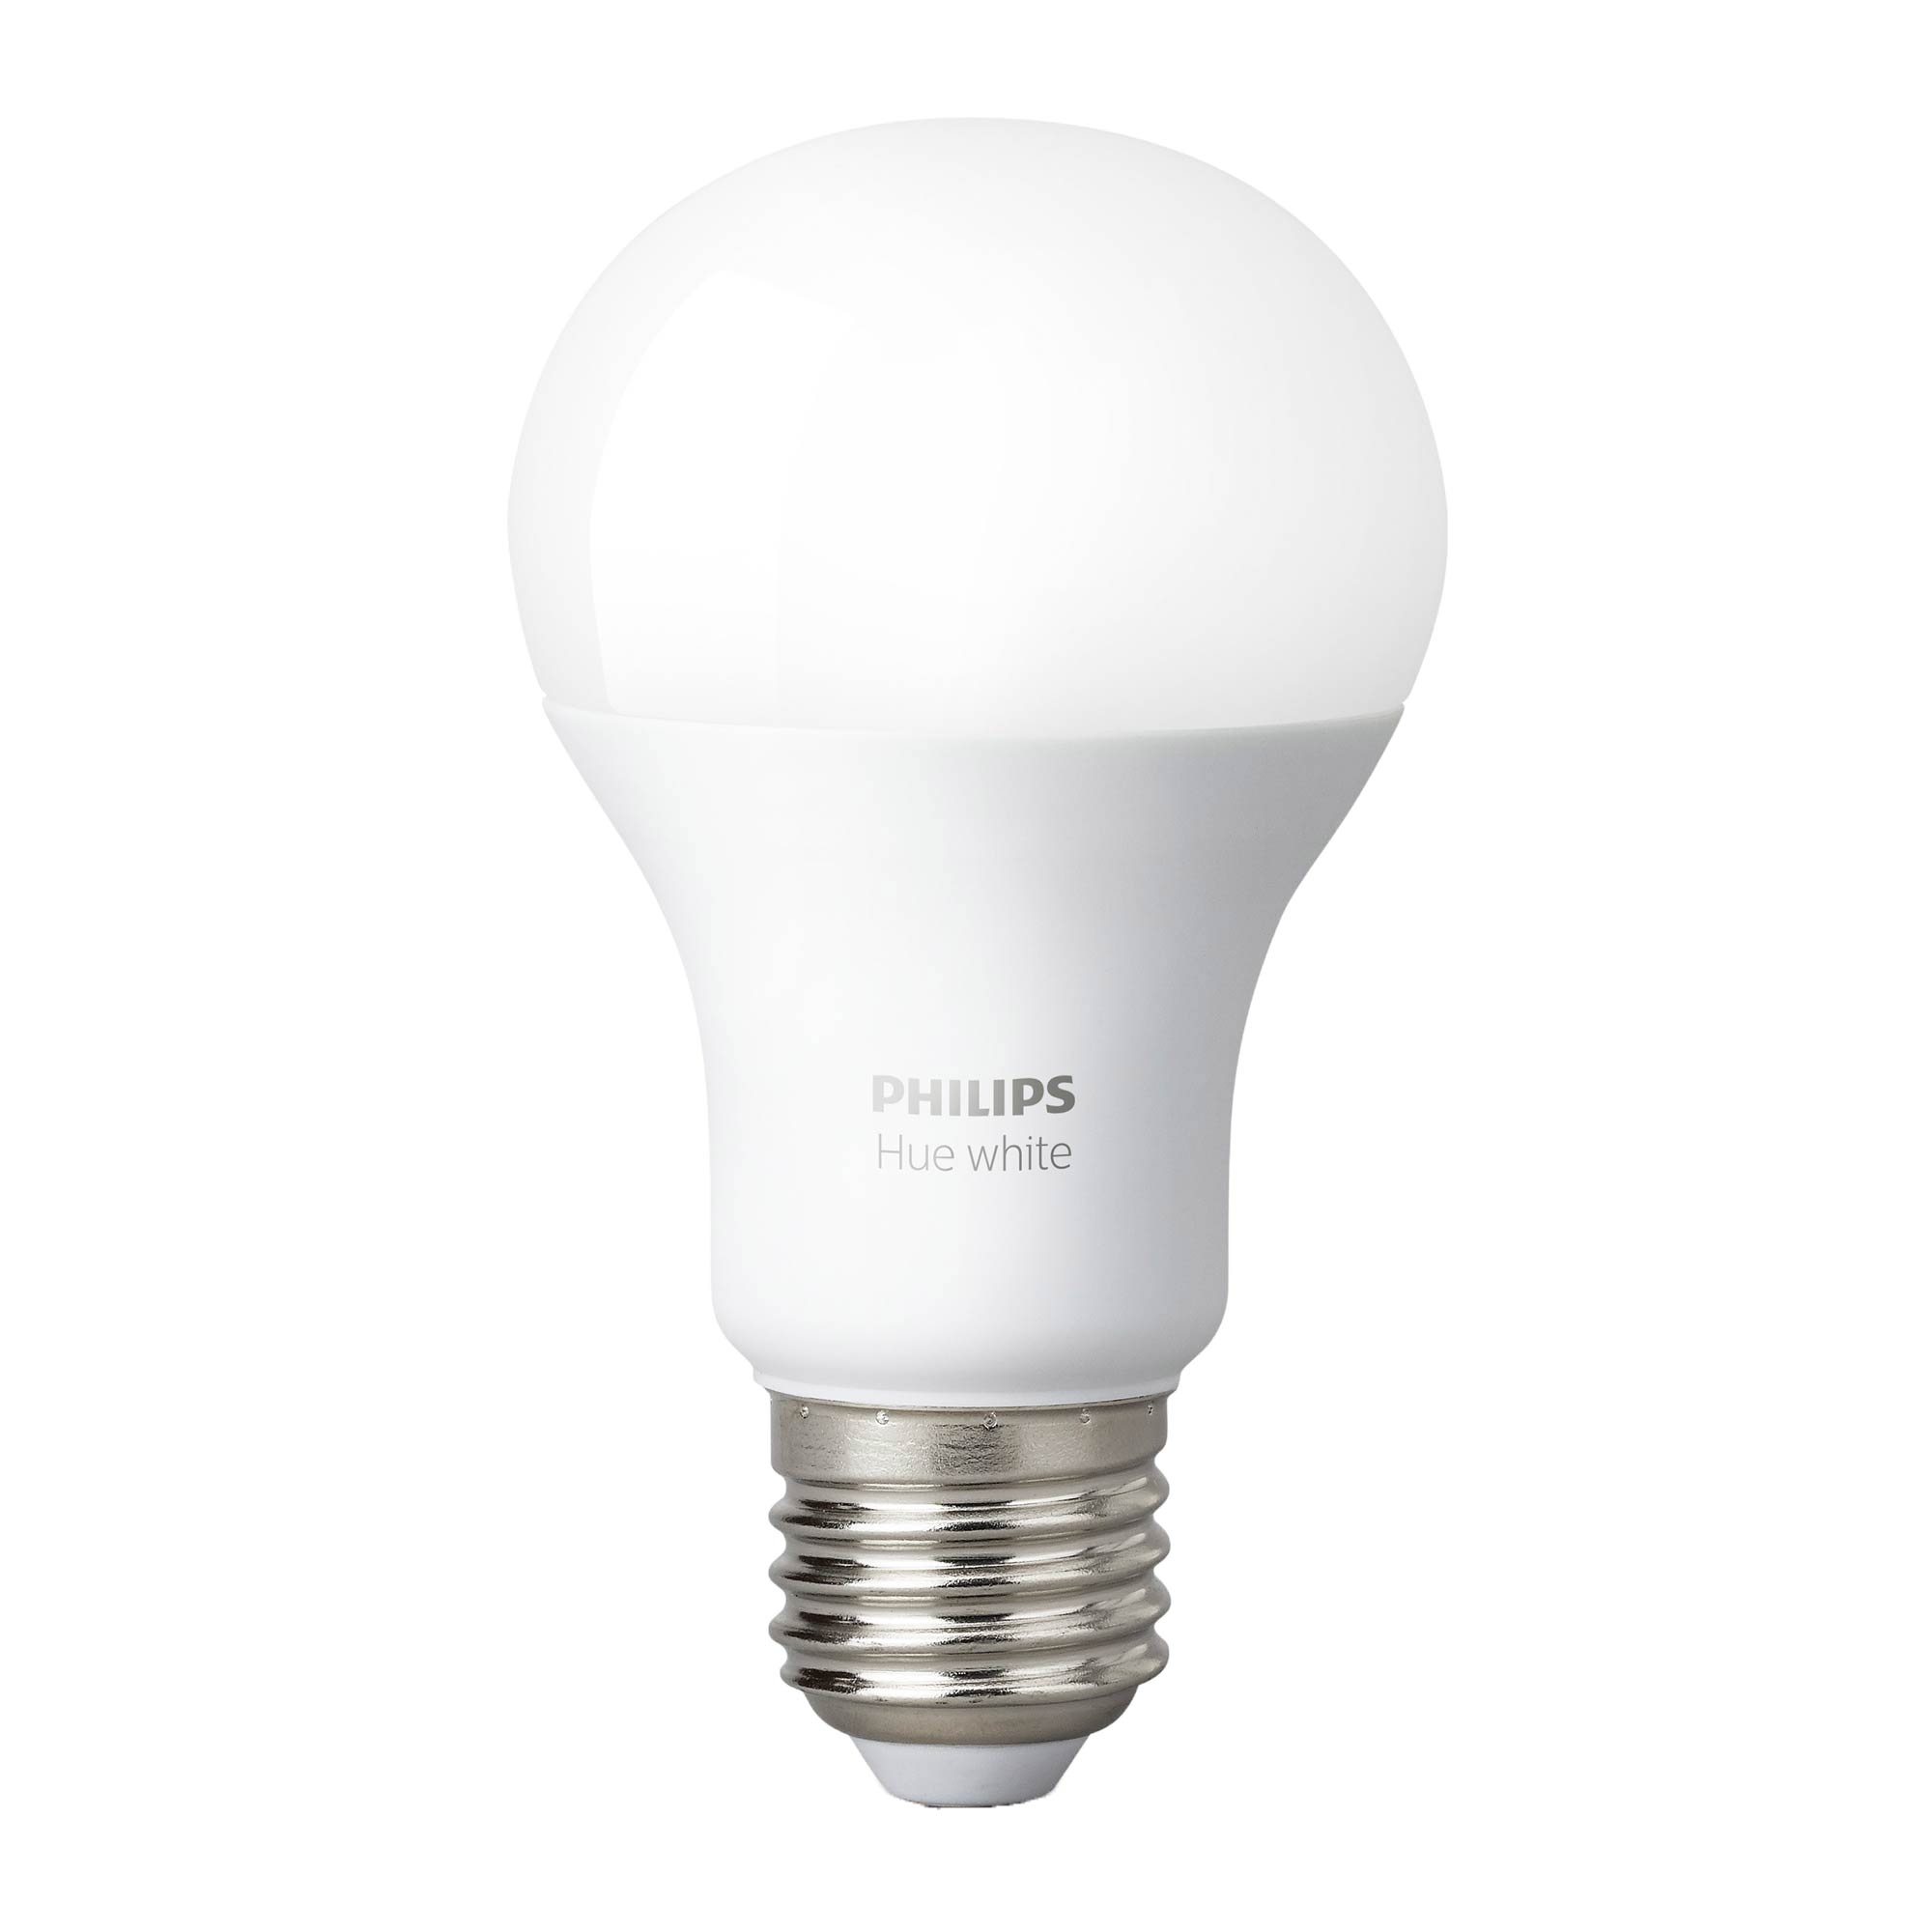 philips hue 929001137015 philips hue bulb white 9w a19 e27 eur. Black Bedroom Furniture Sets. Home Design Ideas